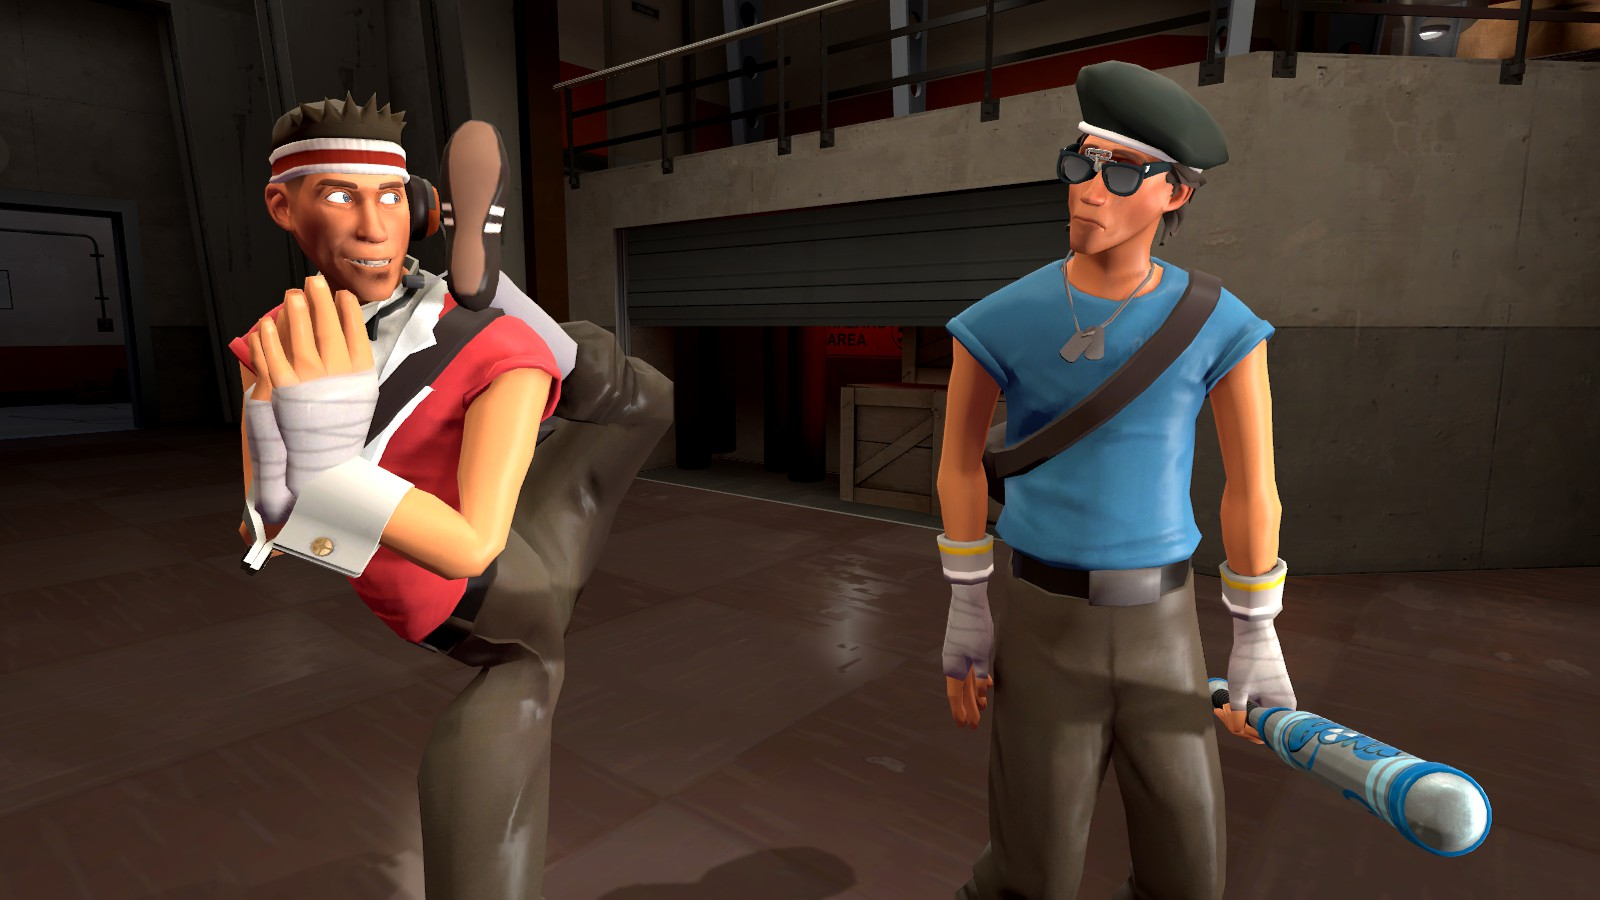 Steam Community :: Guide :: How To Use TF2 Hats / Weapons in